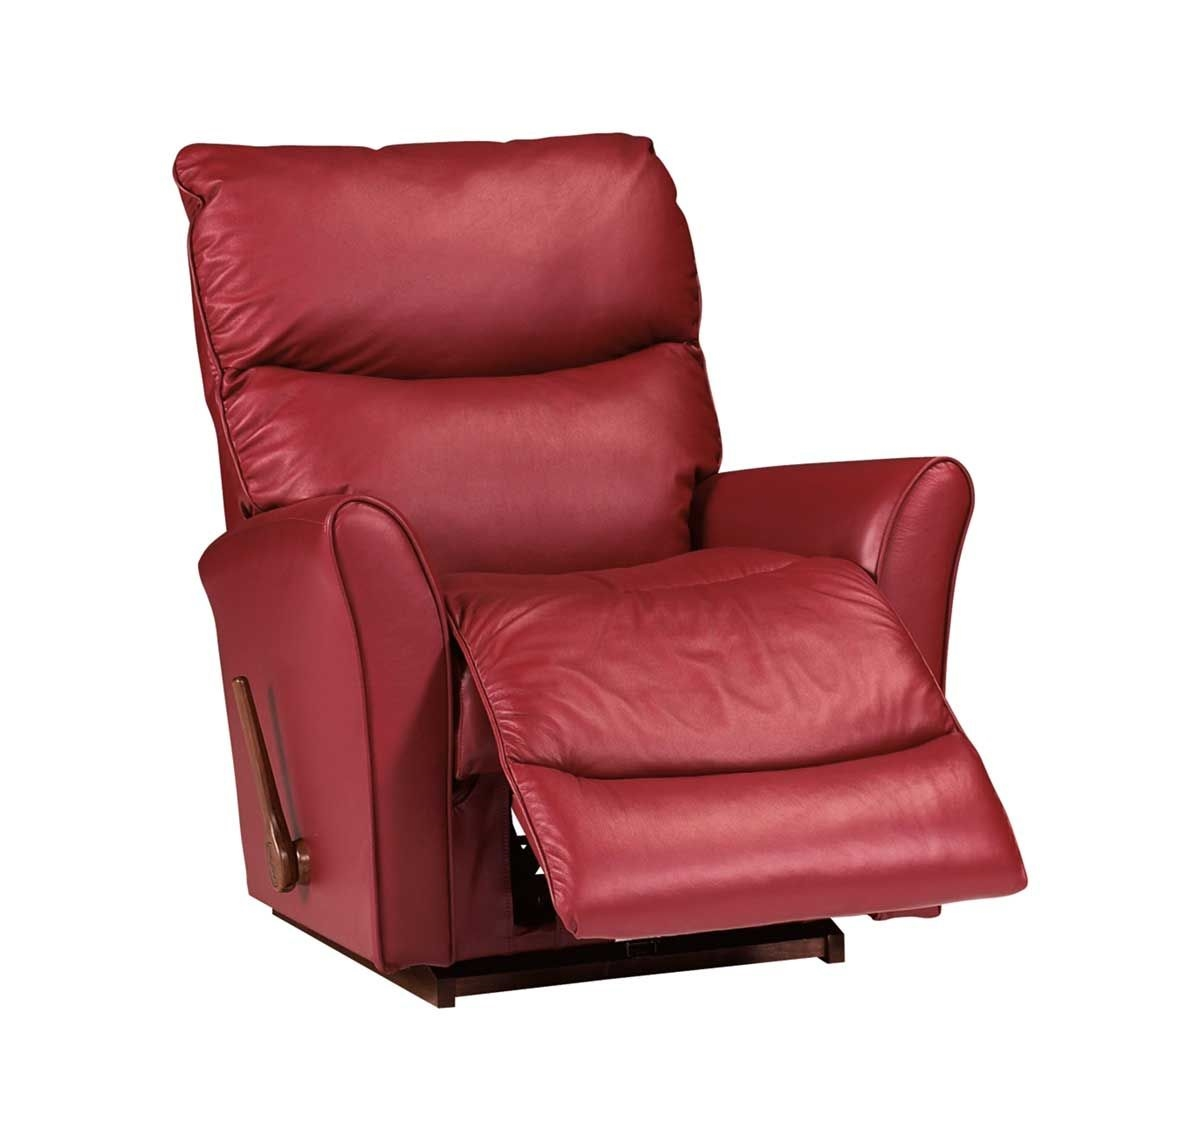 Atmosphere Chaise Recliner Badcock Amp More